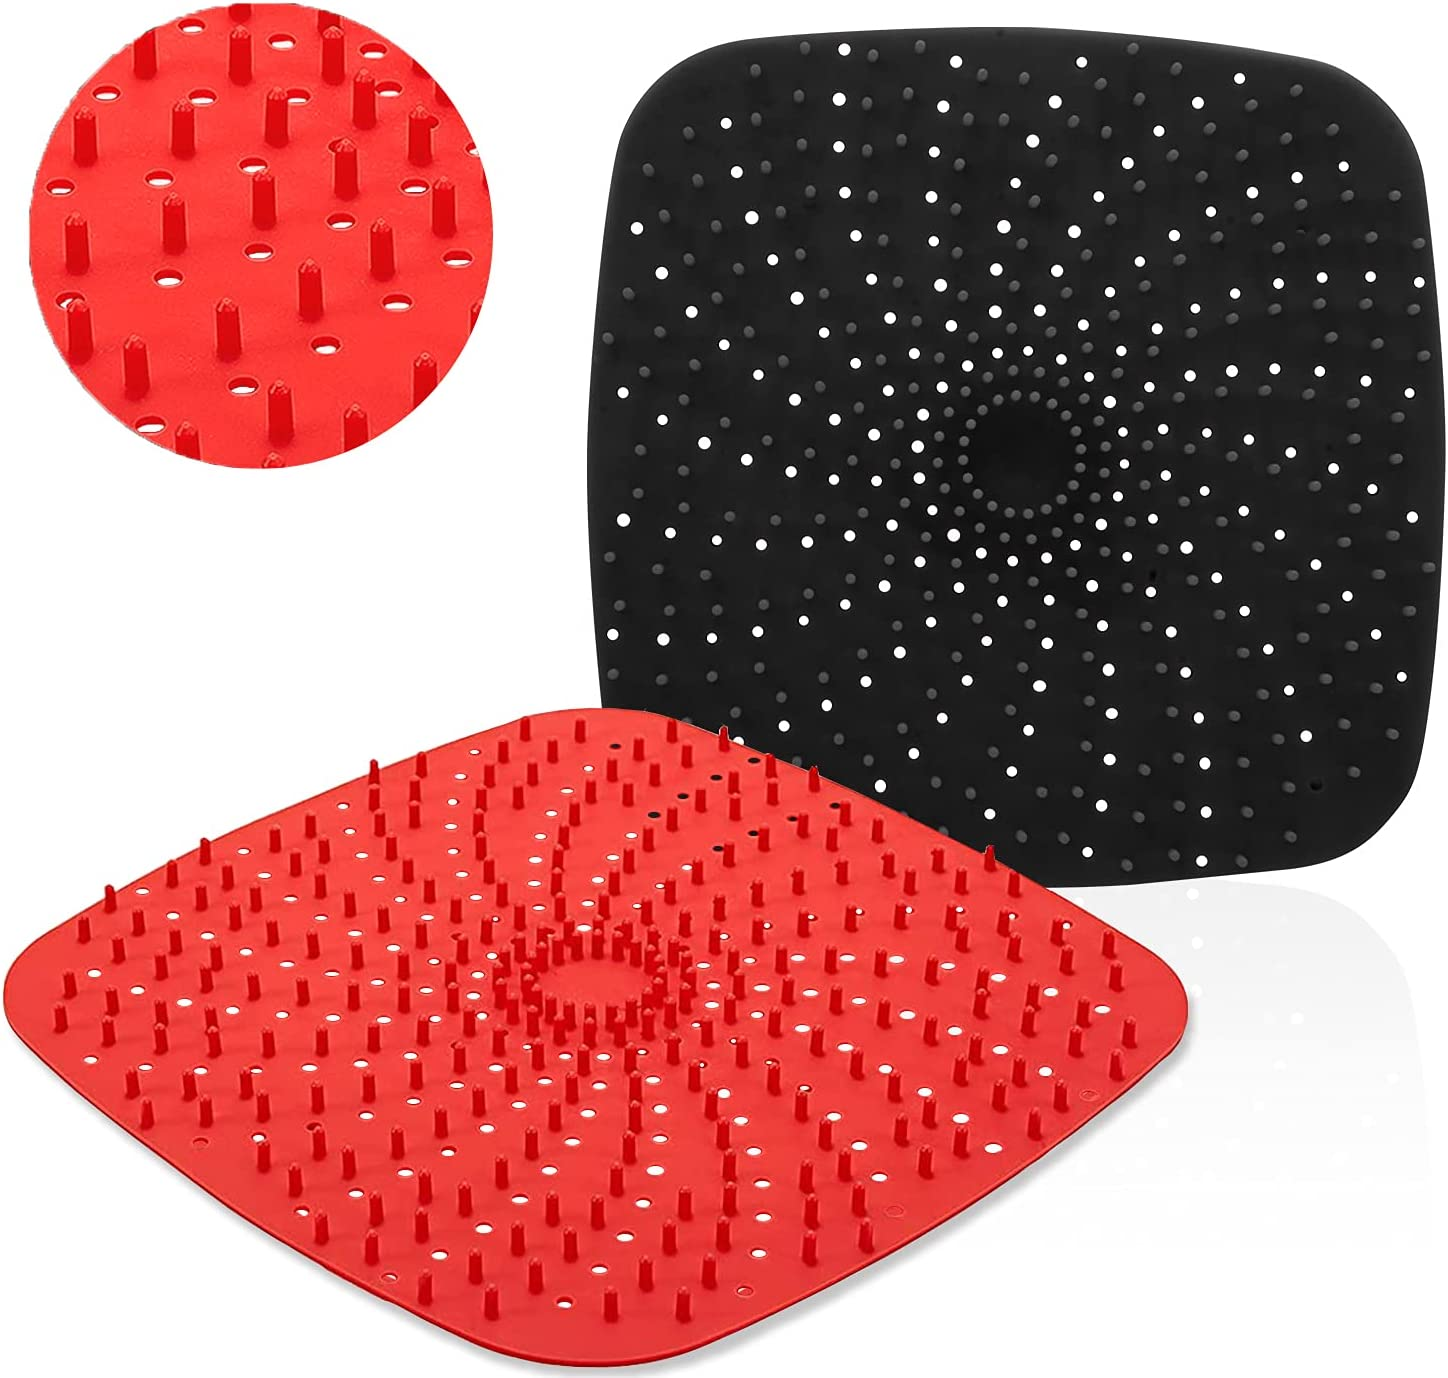 Upgrade Reusable Air Fryer Liners with Raised Silicone   Patented Product   BPA Free Non-Stick Silicone Air Fryer Mats   Air Fryer Silicone Tray Accessories   2 Size Options – 9 Inch Square